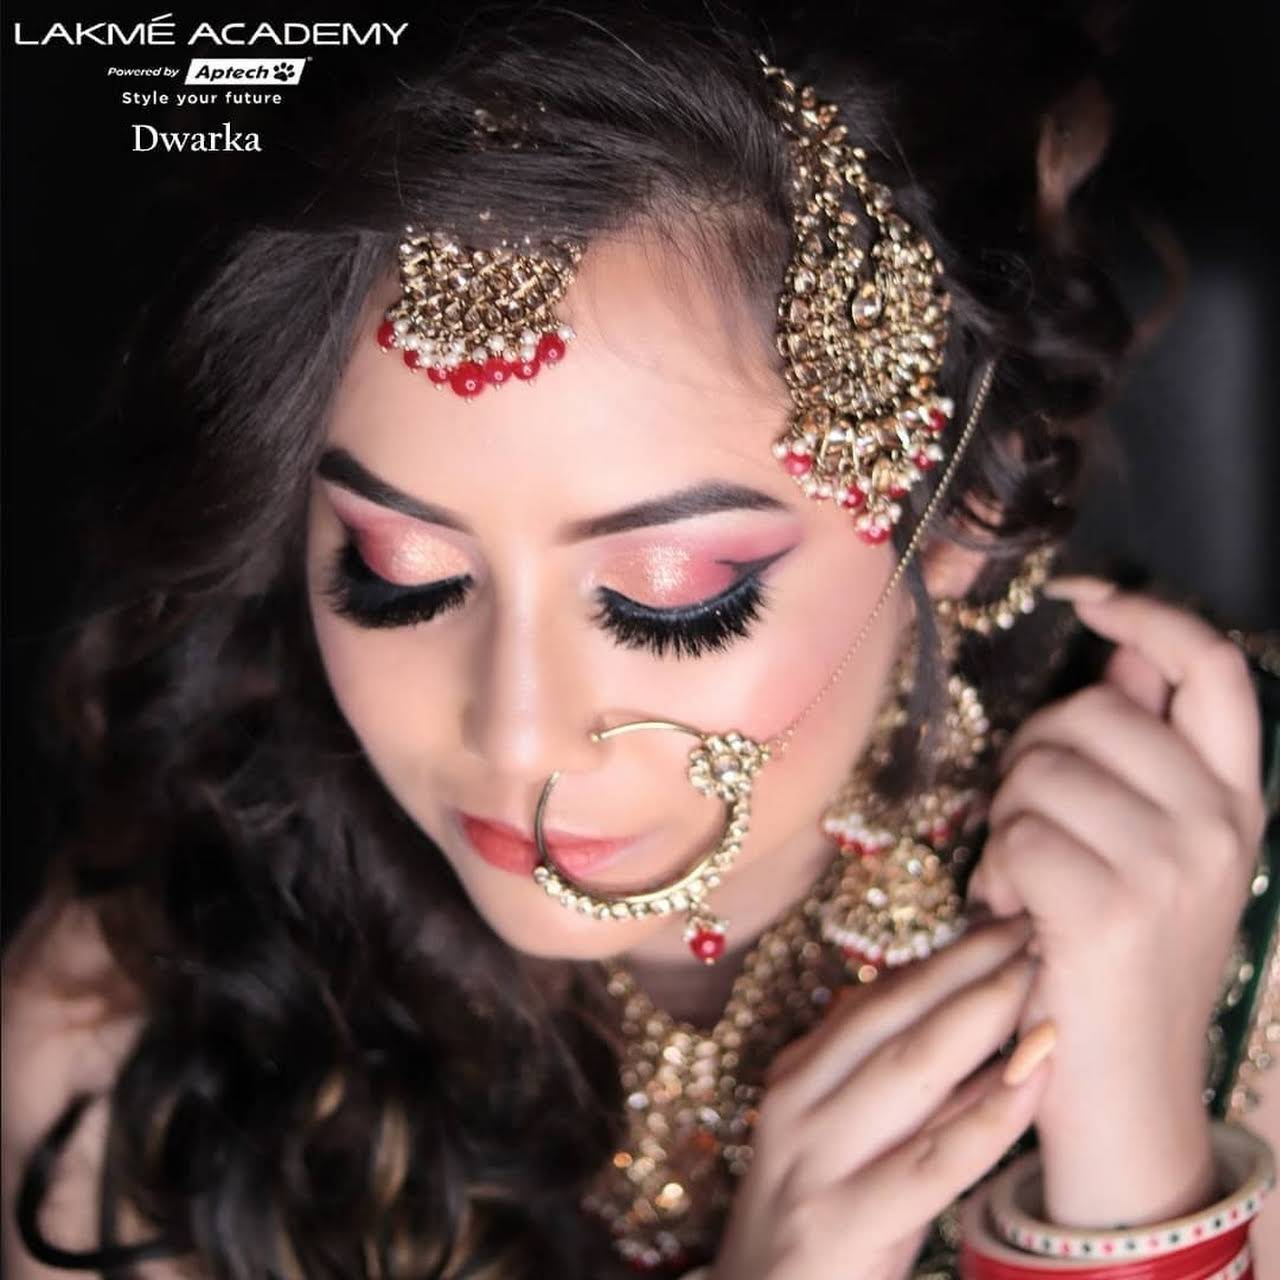 Lakme Academy Dwarka - Beautician Training Institute in New